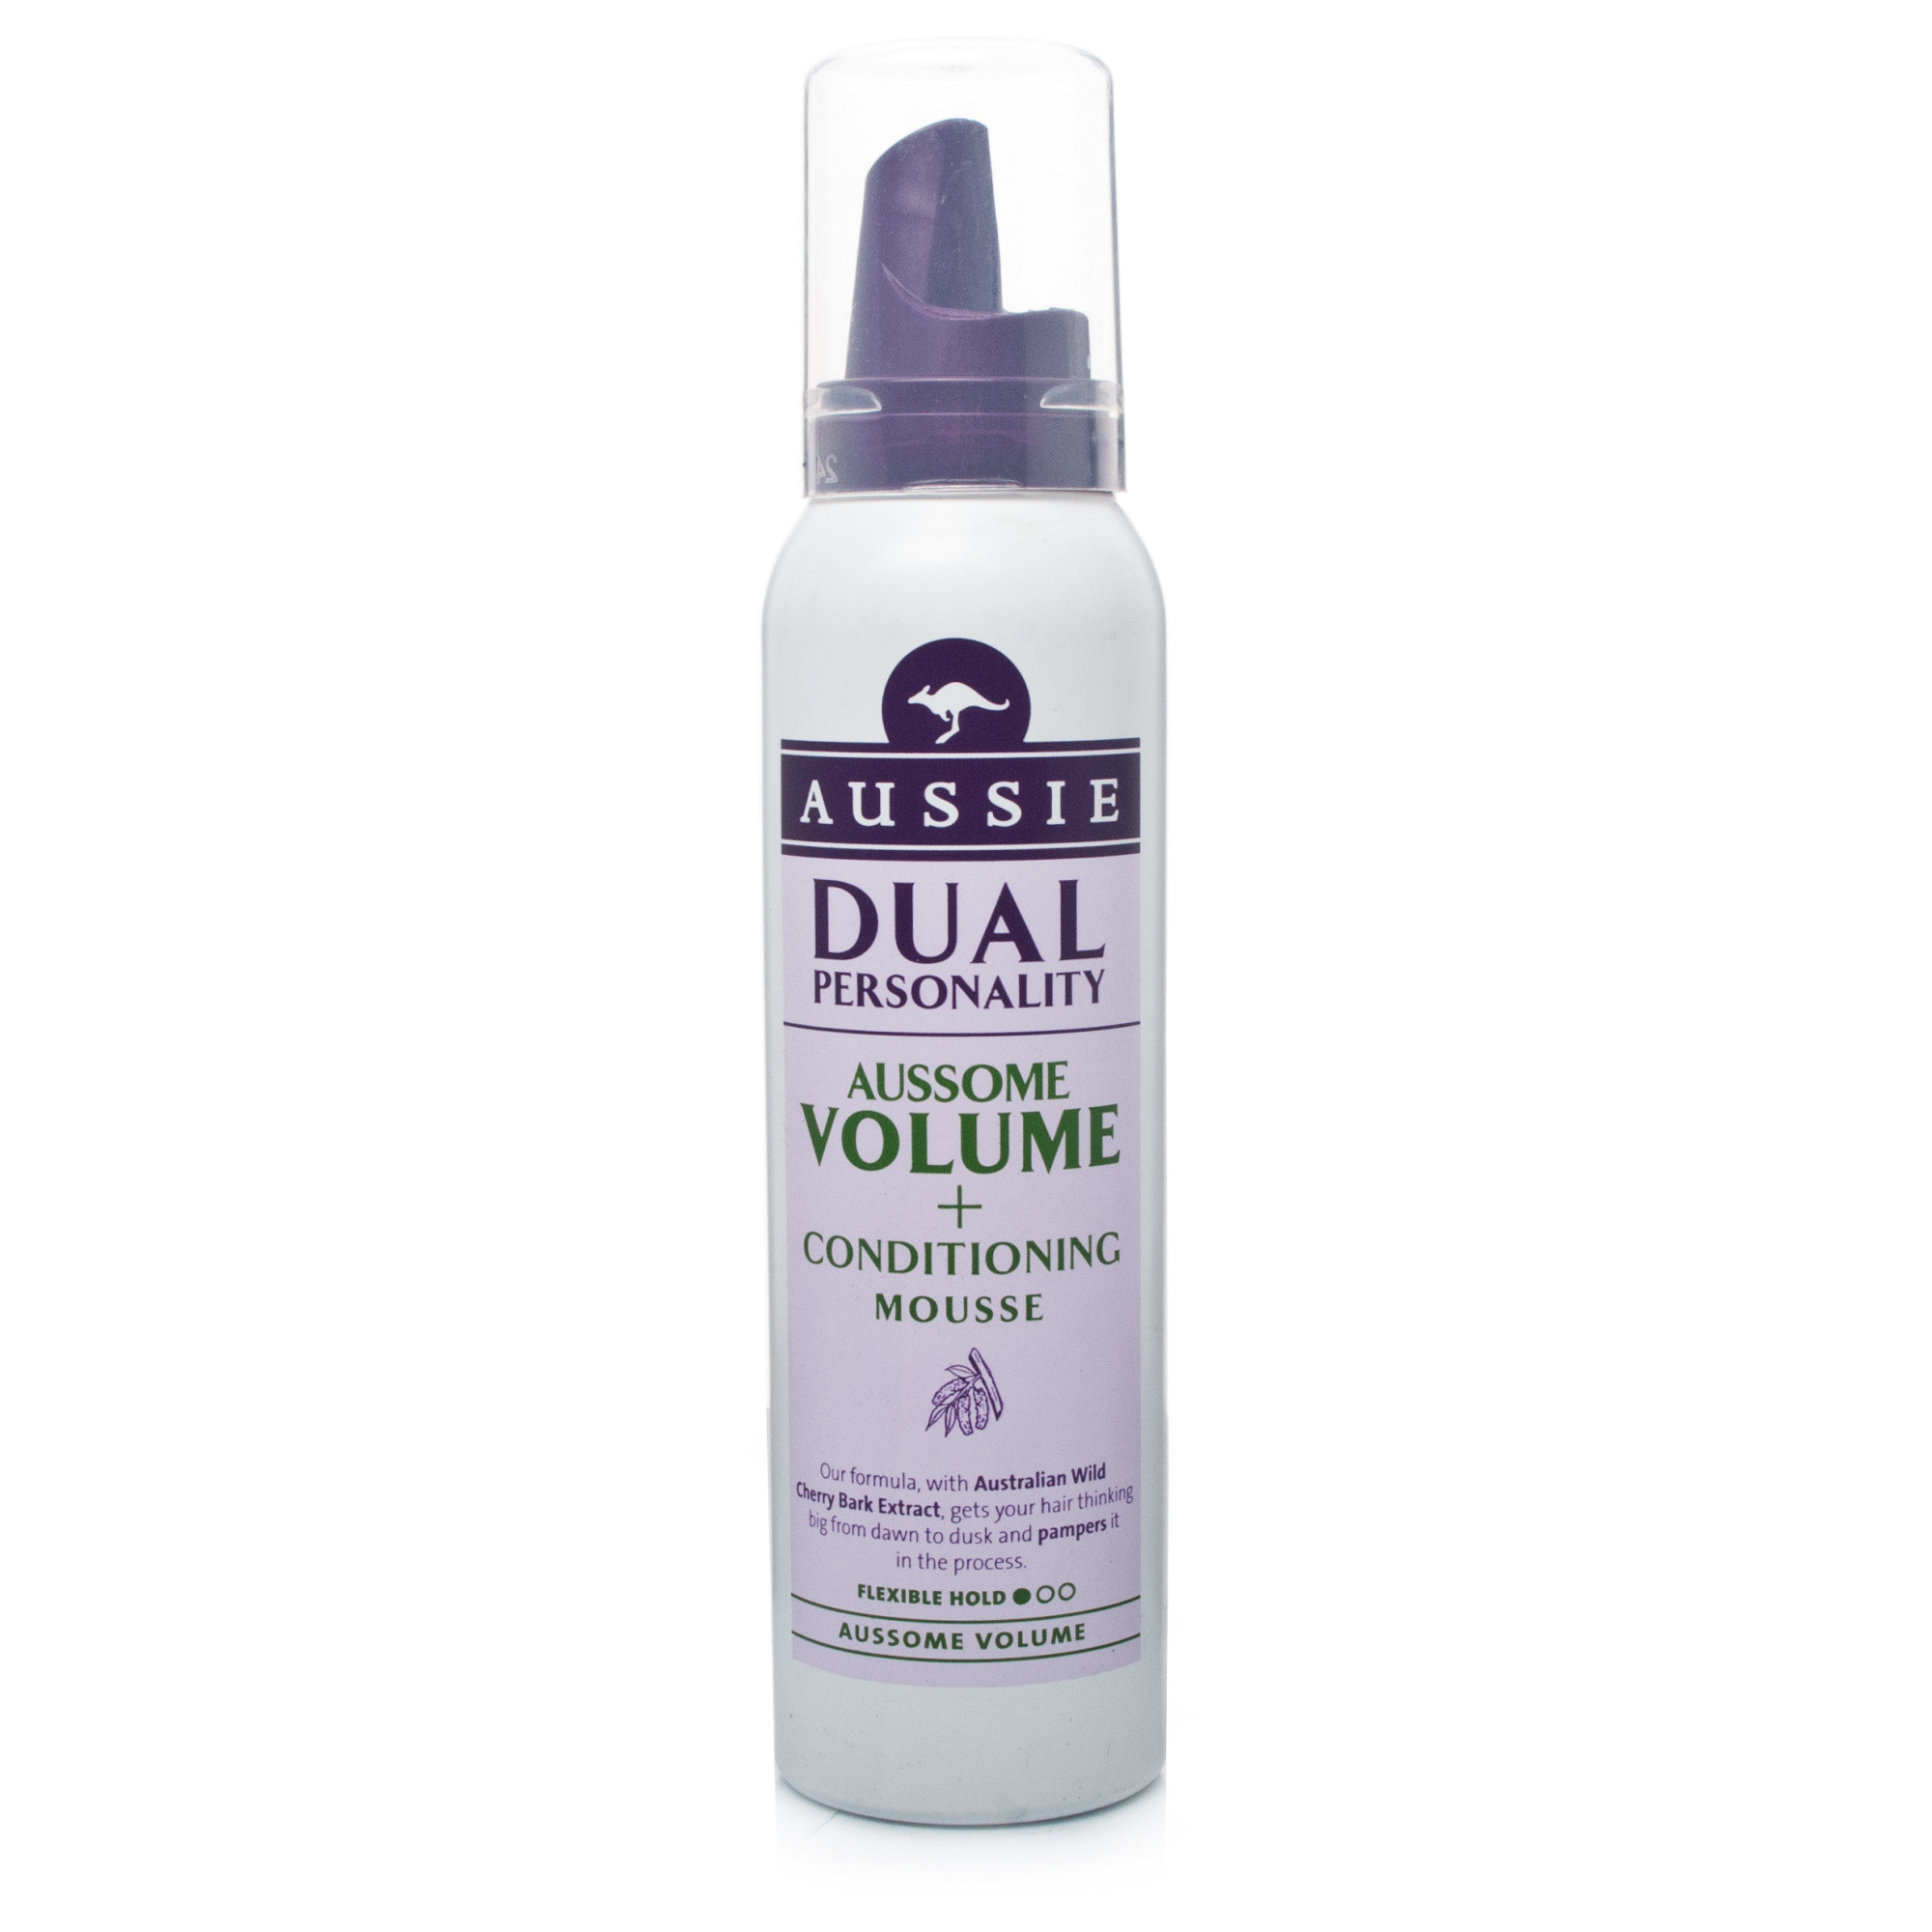 Aussie Dual Personality Volume + Conditioning Mousse